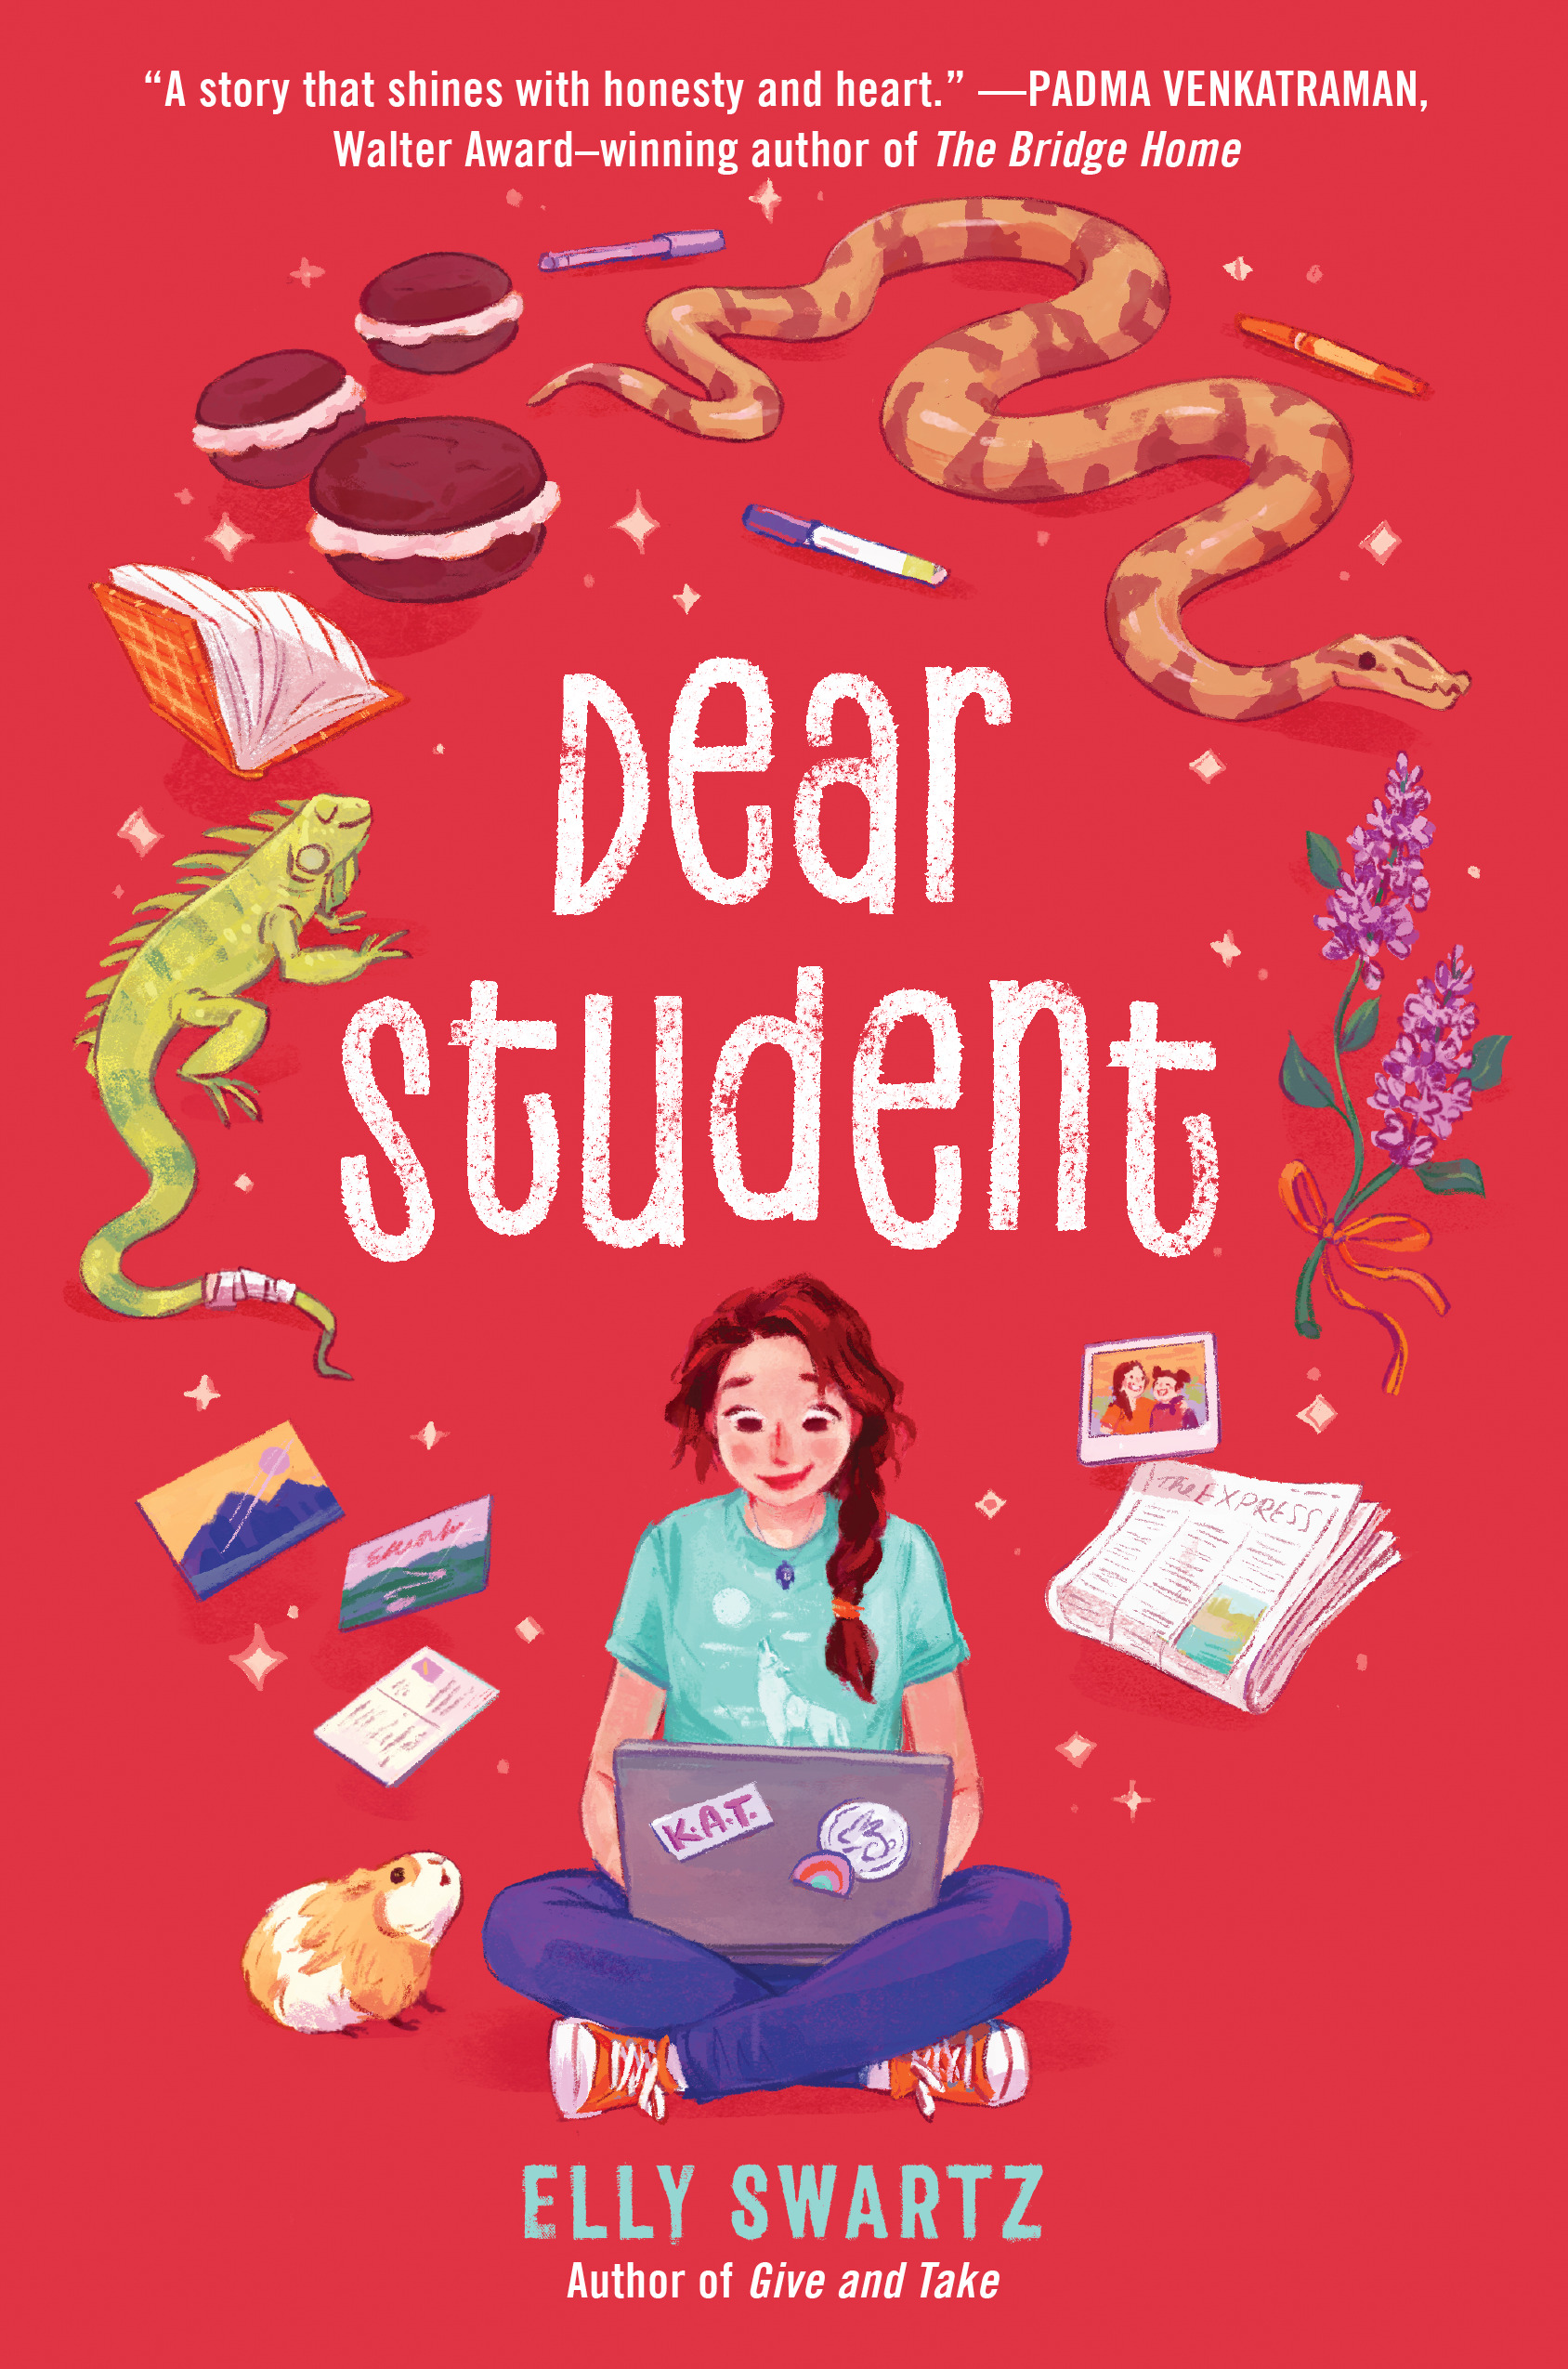 Book Cover to Dear Student by Elly Swartz